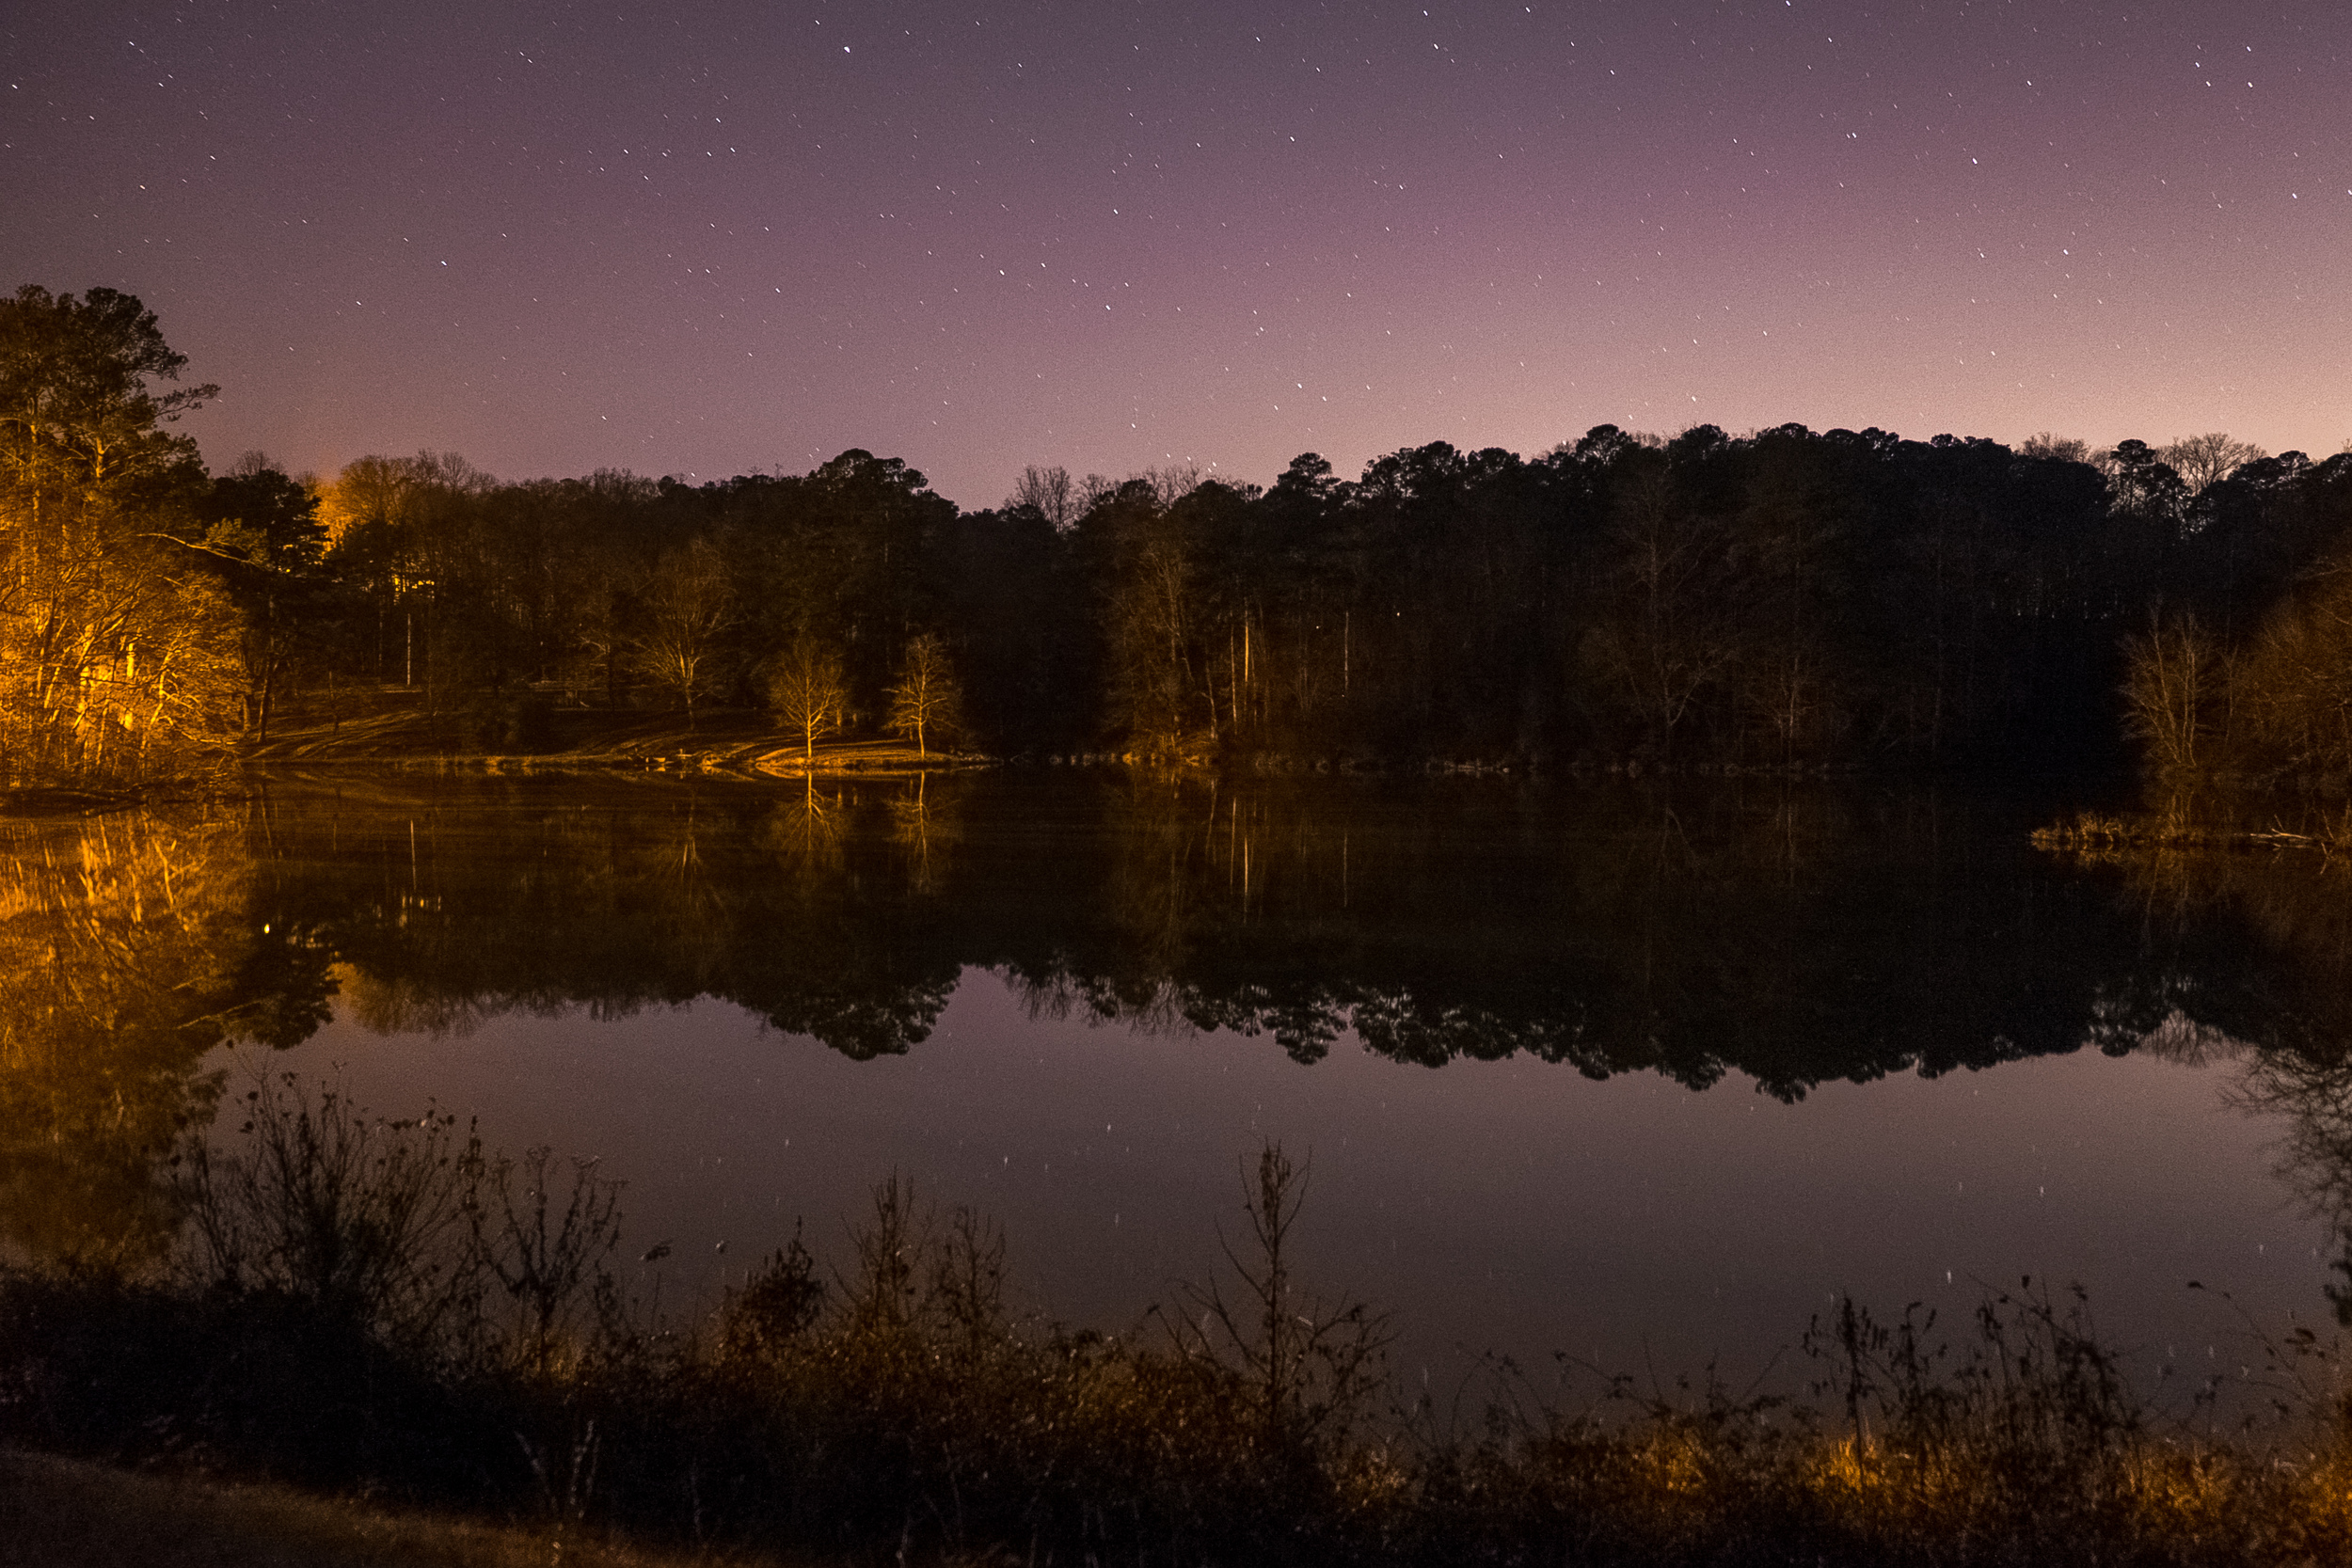 You can see the light pollution from a nearby city behind the trees. Unfortunately, this makes long exposures (very important for night photography) almost impossible. Caught a couple small meteors though.